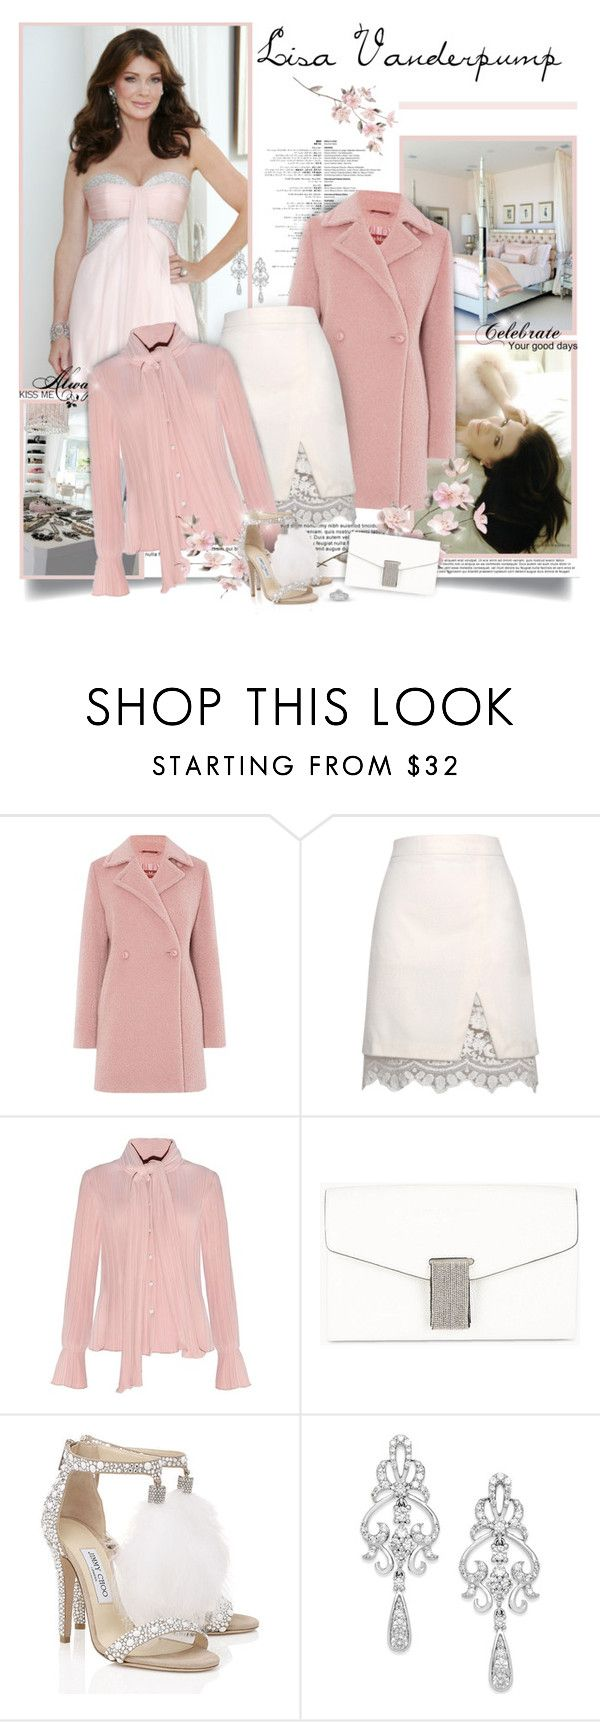 """""""Lisa Vanderpump - The Real Housewives of Beverly Hills"""" by chris101287 ❤ liked on Polyvore featuring Love Quotes Scarves, MaxMara, Relaxfeel, Brunello Cucinelli, Jimmy Choo, Wrapped In Love, Tiffany & Co., women's clothing, women and female"""